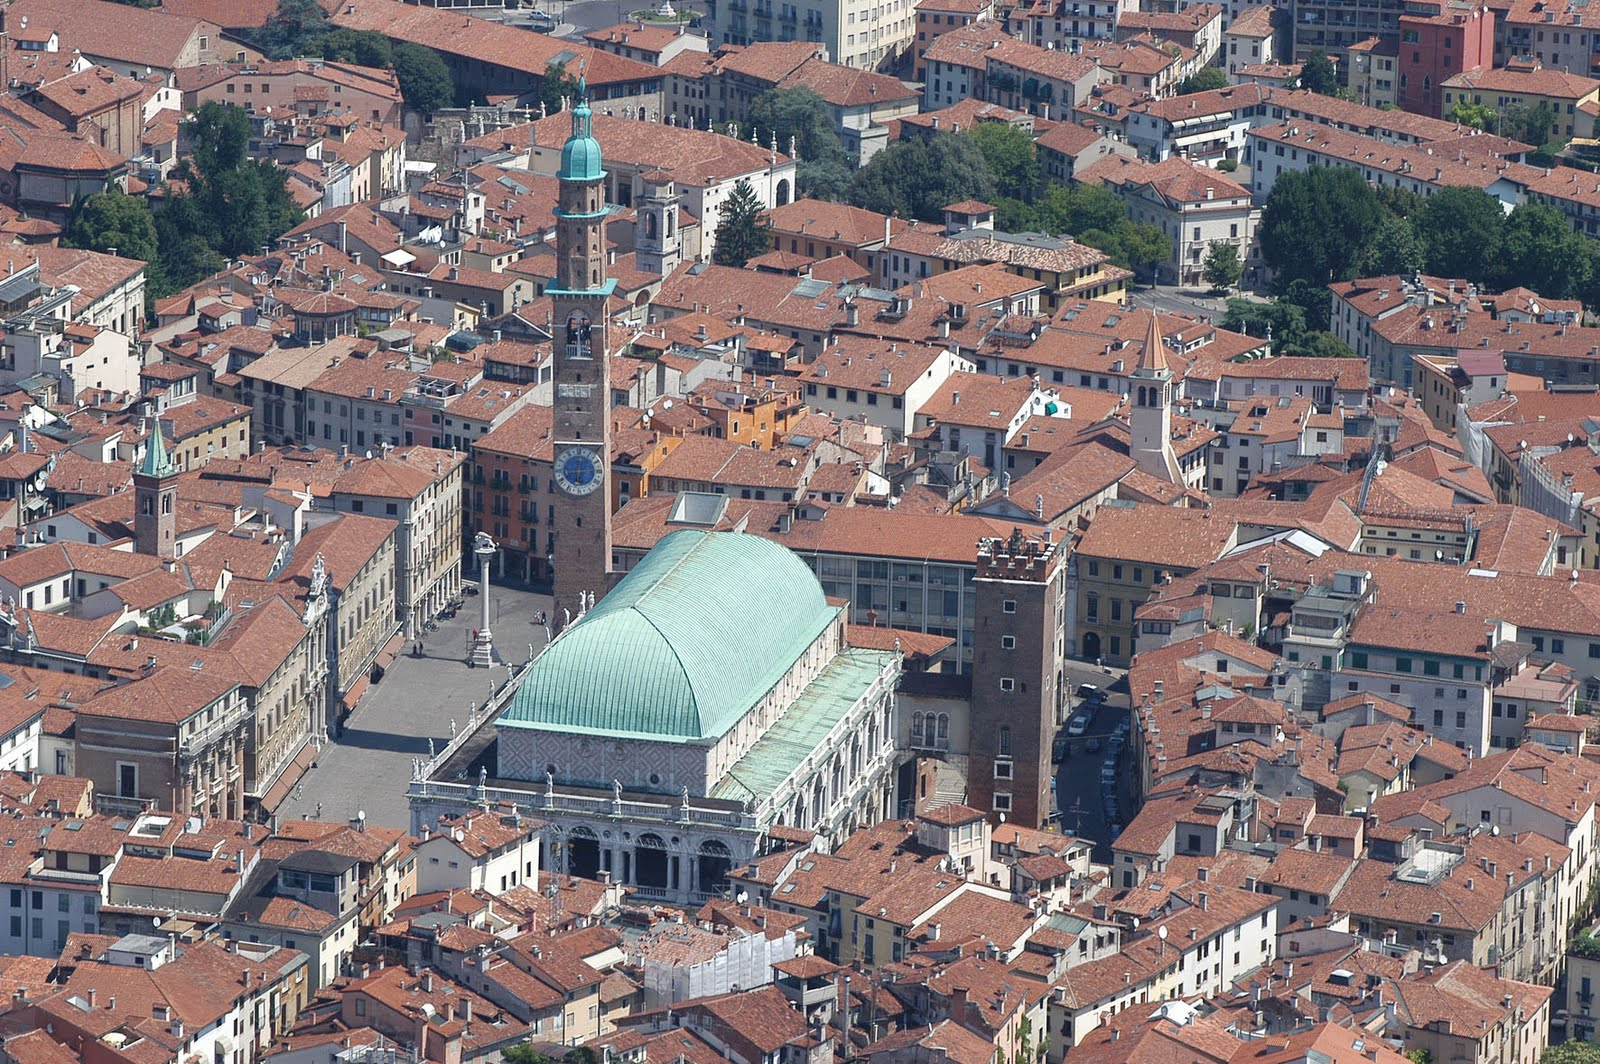 The rooftops of Vicenza